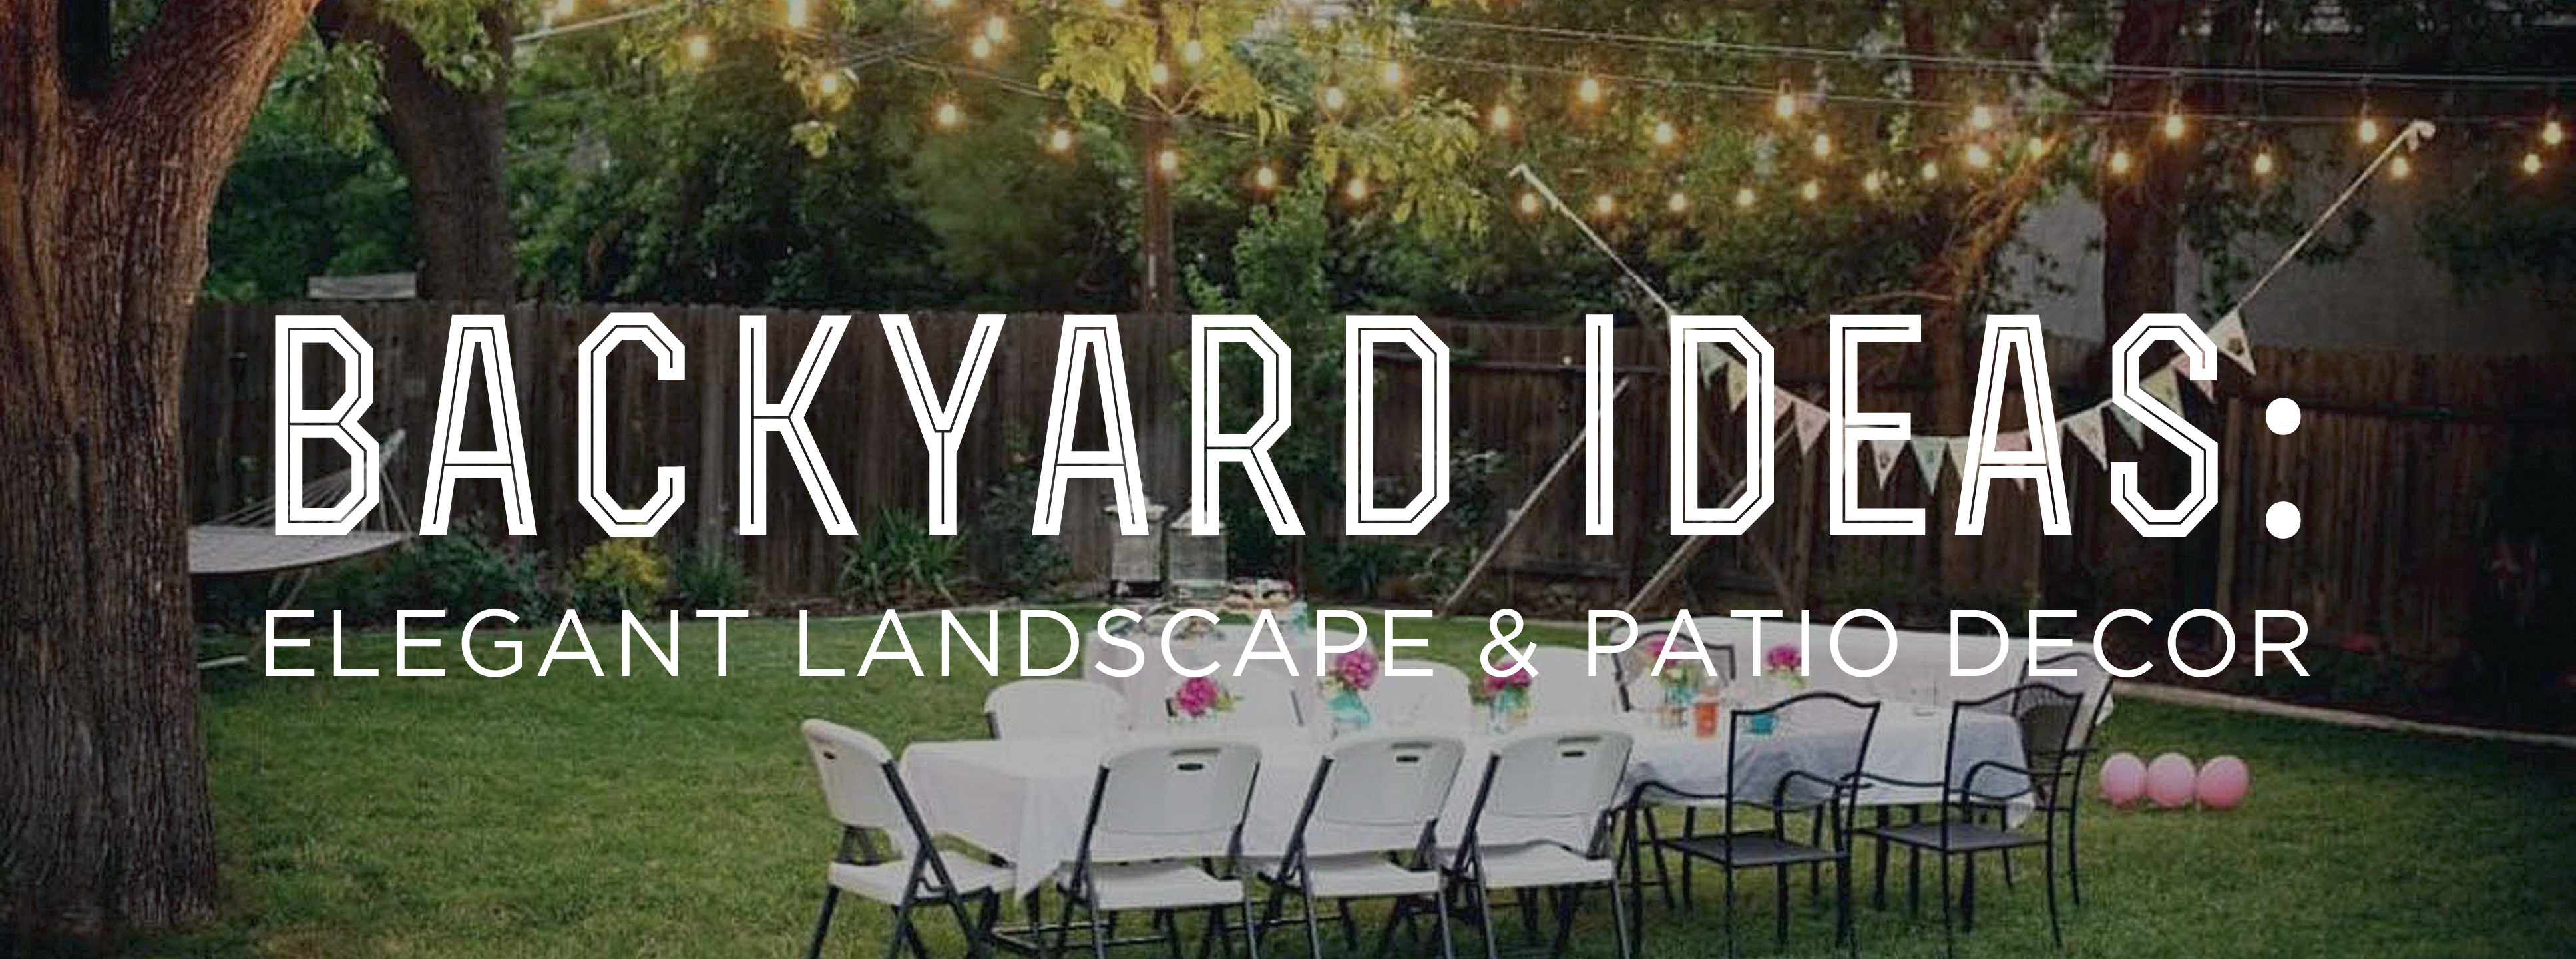 Backyard Ideas Elegant Landscape And Patio Decor Gentlemans Gazette intended for 14 Some of the Coolest Concepts of How to Upgrade Backyard Pictures Ideas Landscape